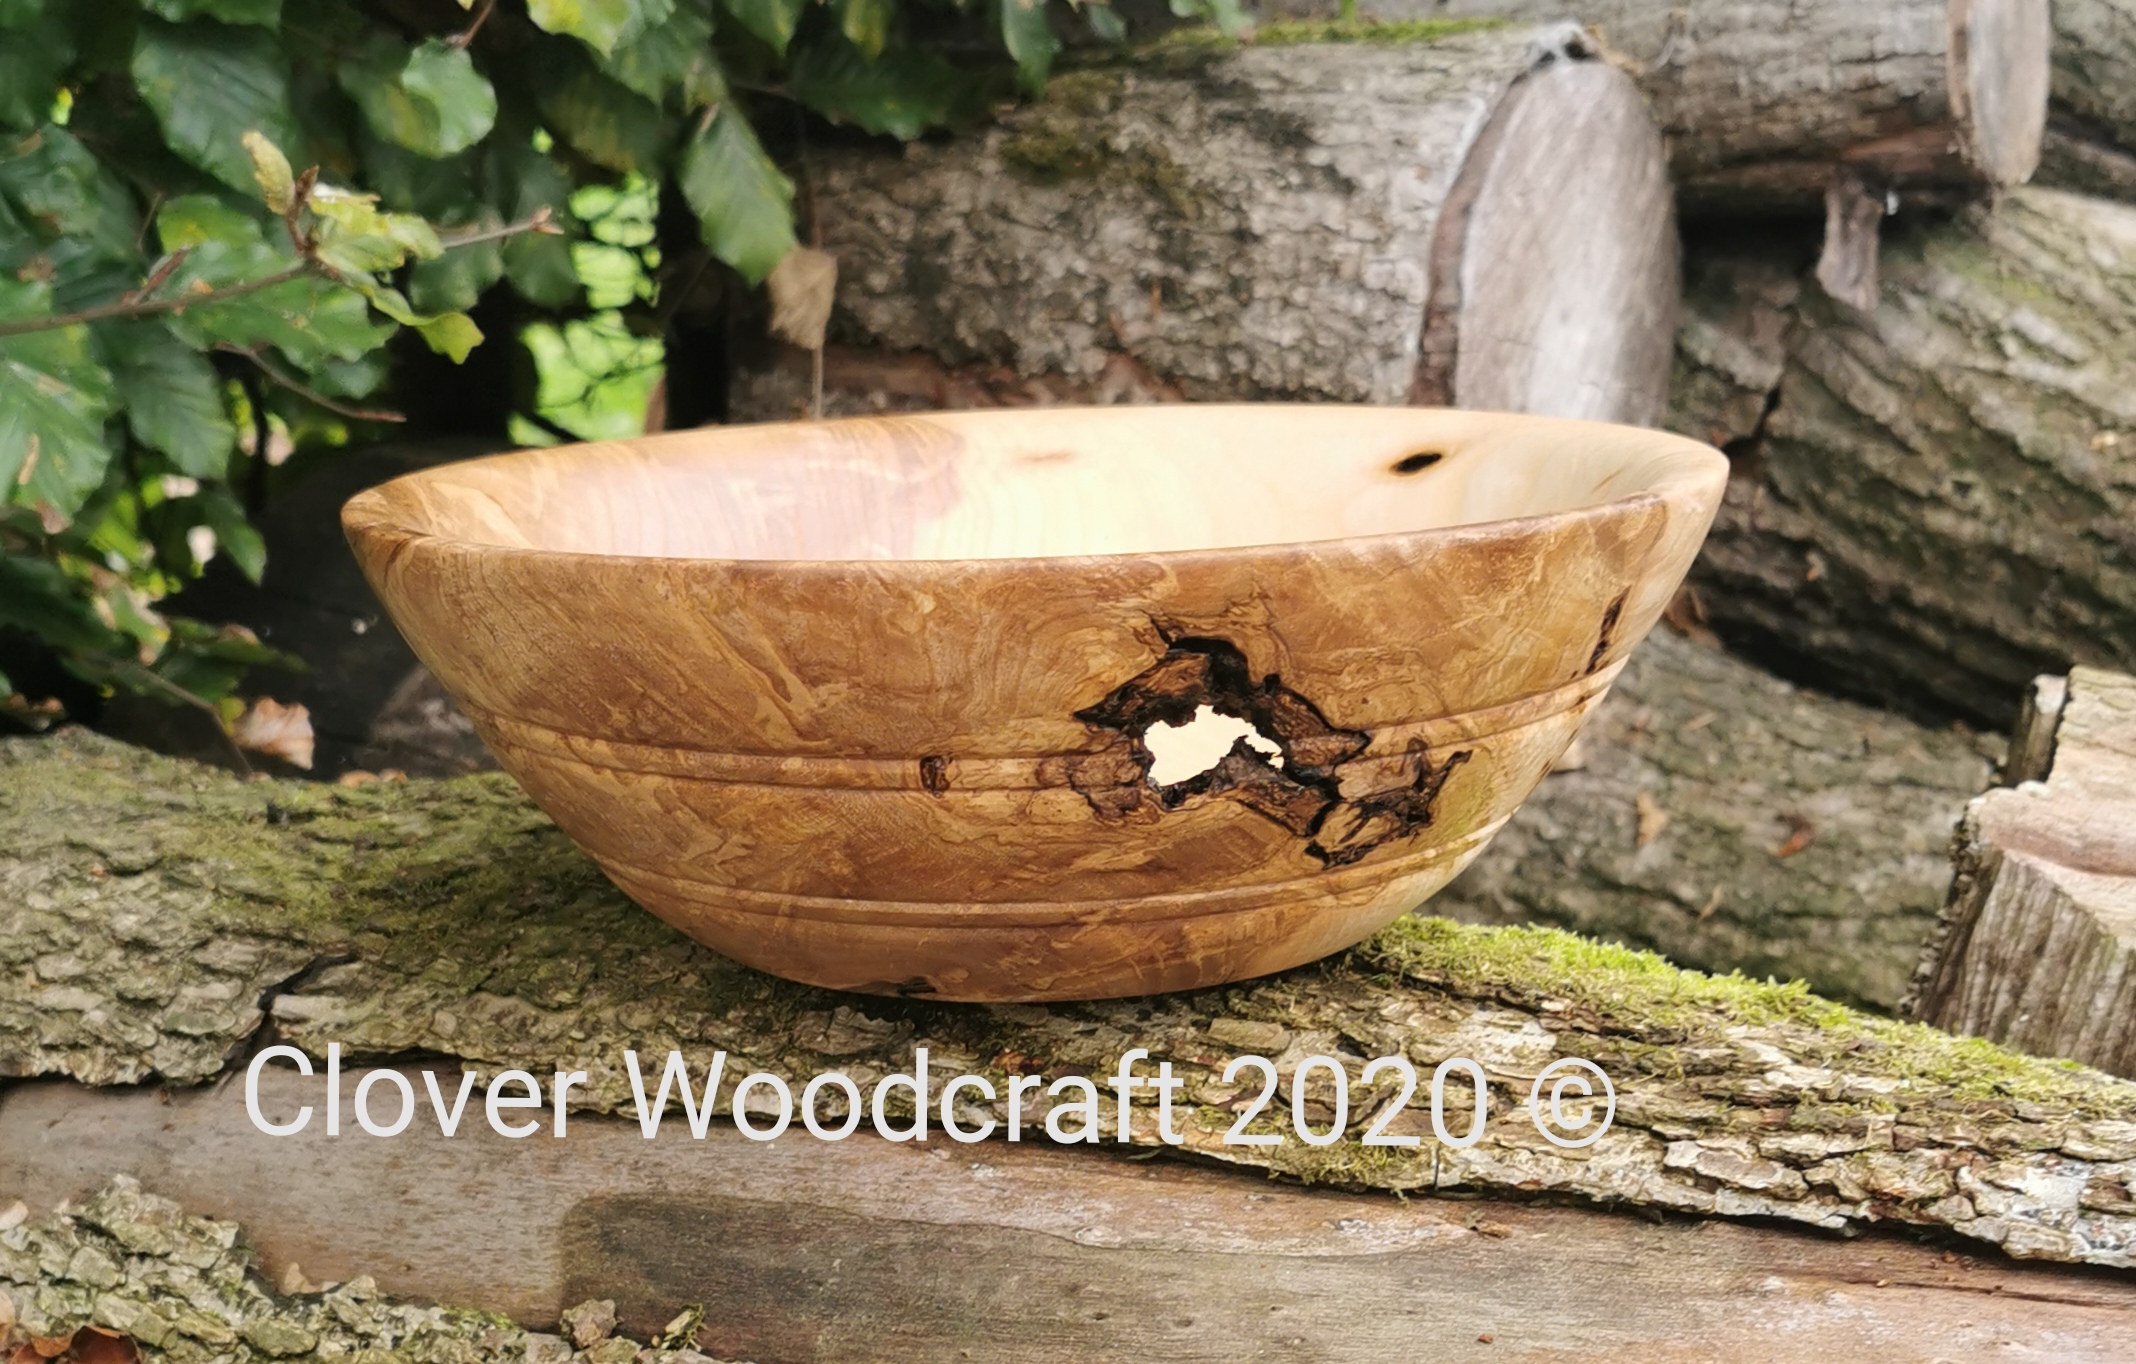 Irish Ash Wood Turned Salad Bowl featuring Natural Voids and Bark Inclusions.